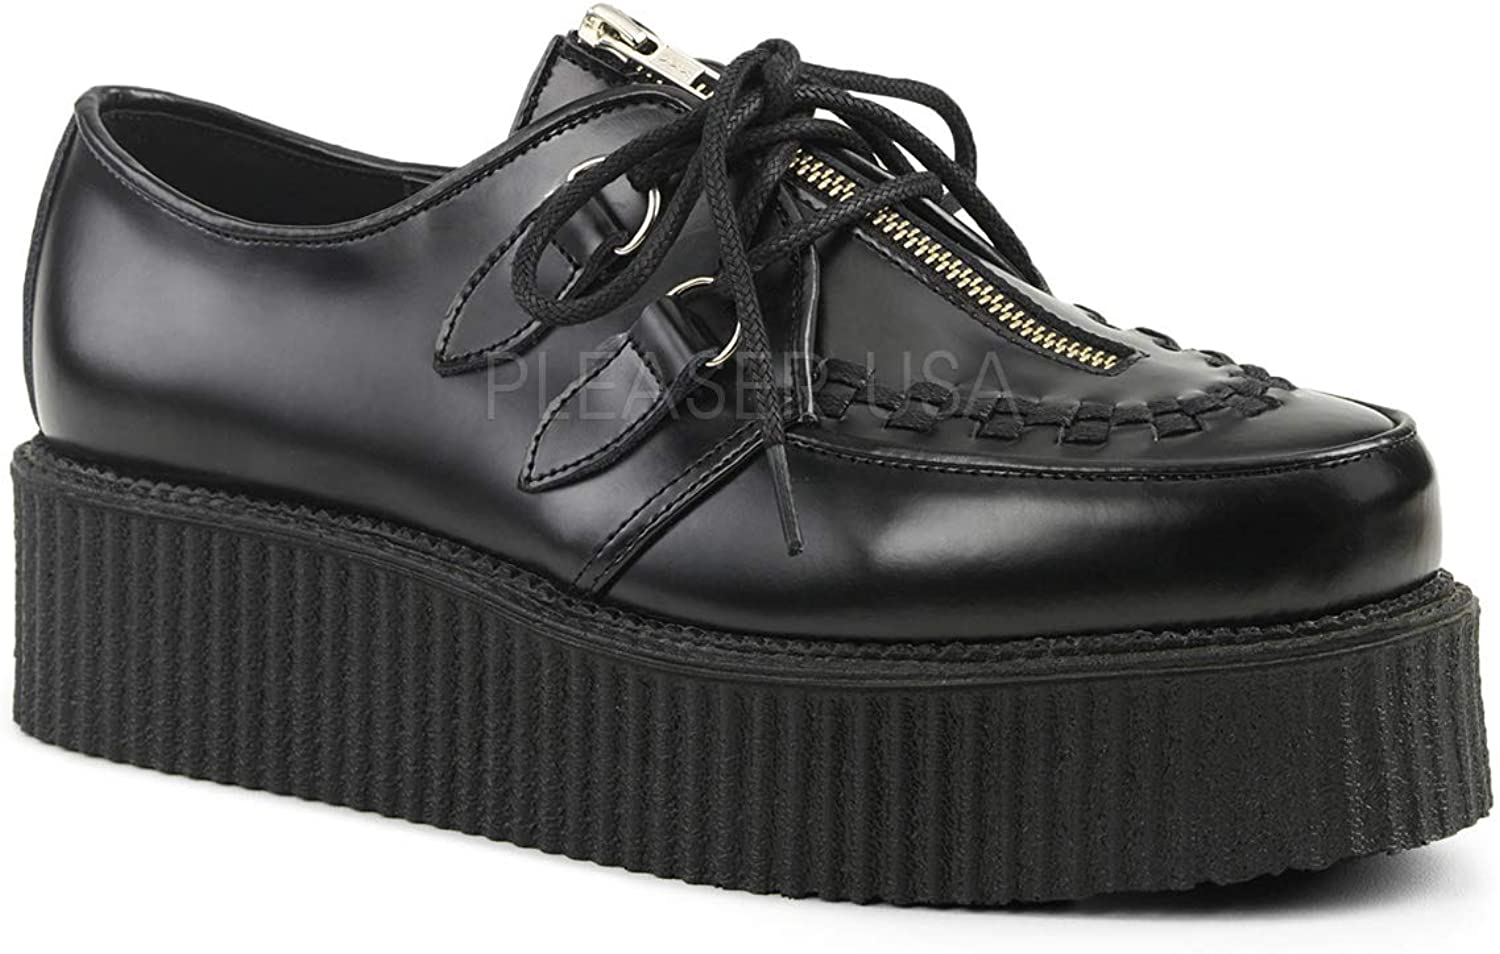 Demonia CREEPER-440 Punk Platform Creeper Goth shoes Front Zipper Lace Up Black